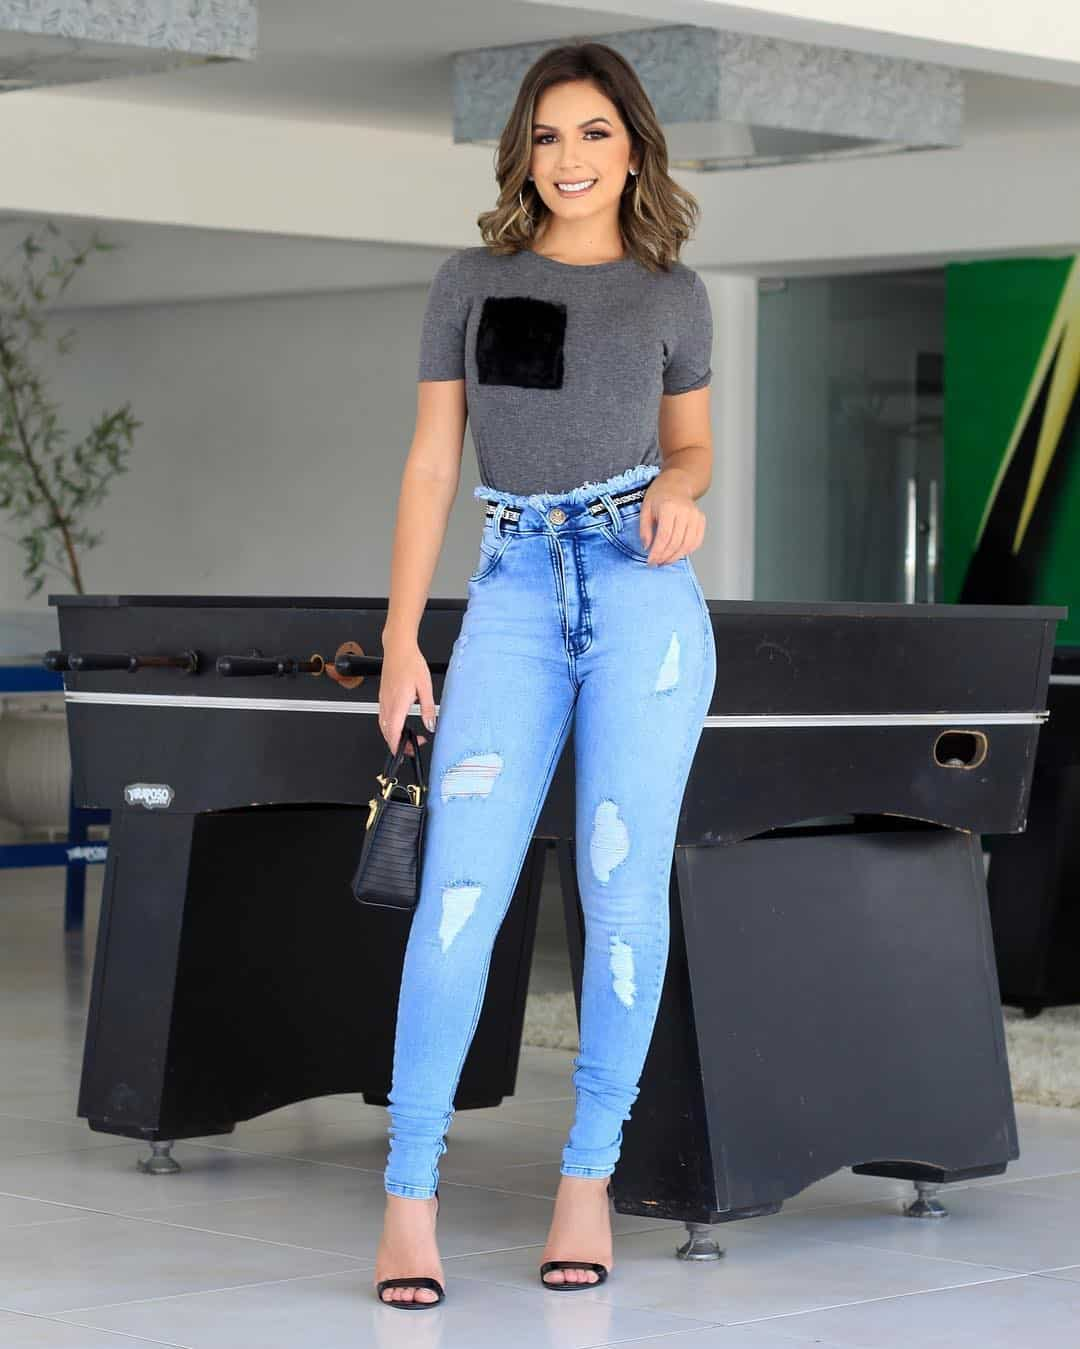 Womens Jeans 2021: Top Trendy Styles and Ideas of Jeans for Women 2021